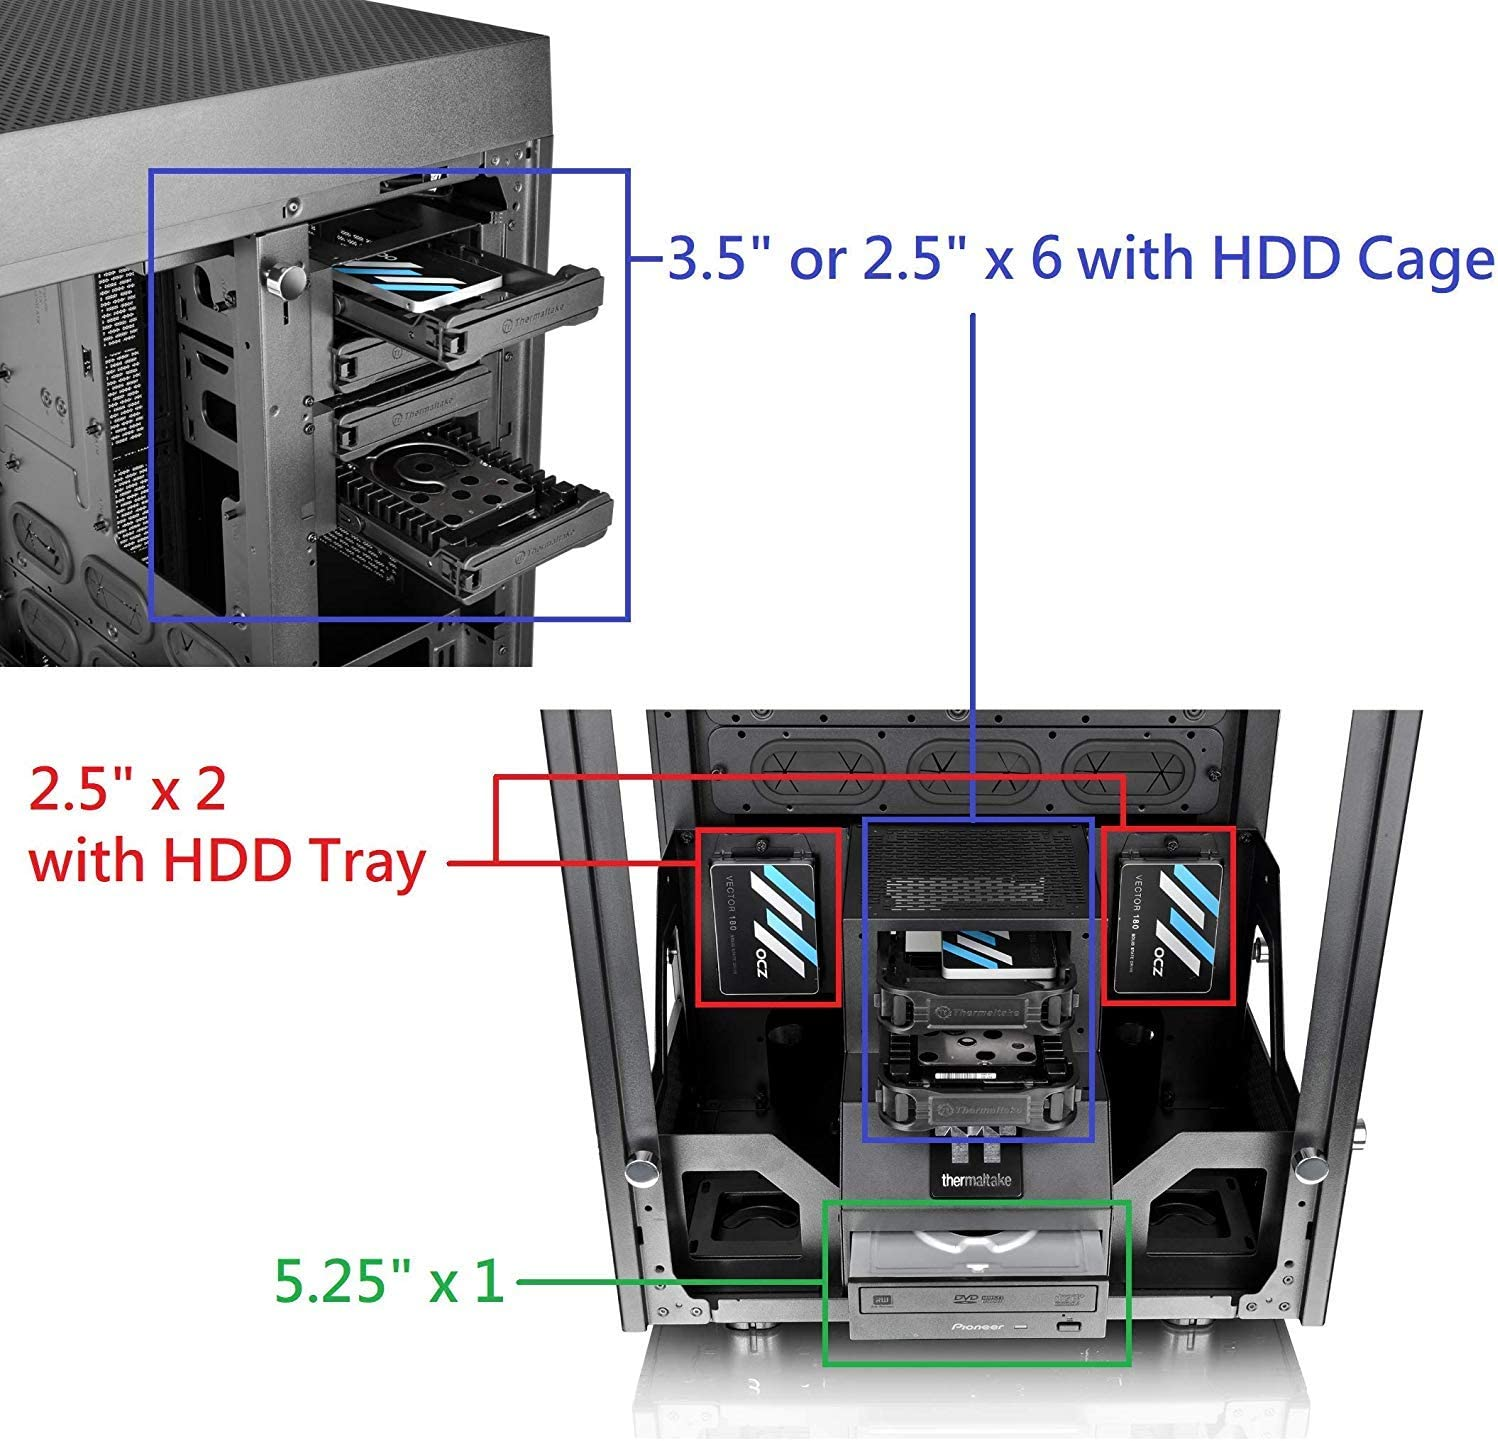 Tower 900 Black Edition Tempered Glass Fully Modular E-ATX Vertical Super Tower Computer Chassis CA-1H1-00F1WN-00